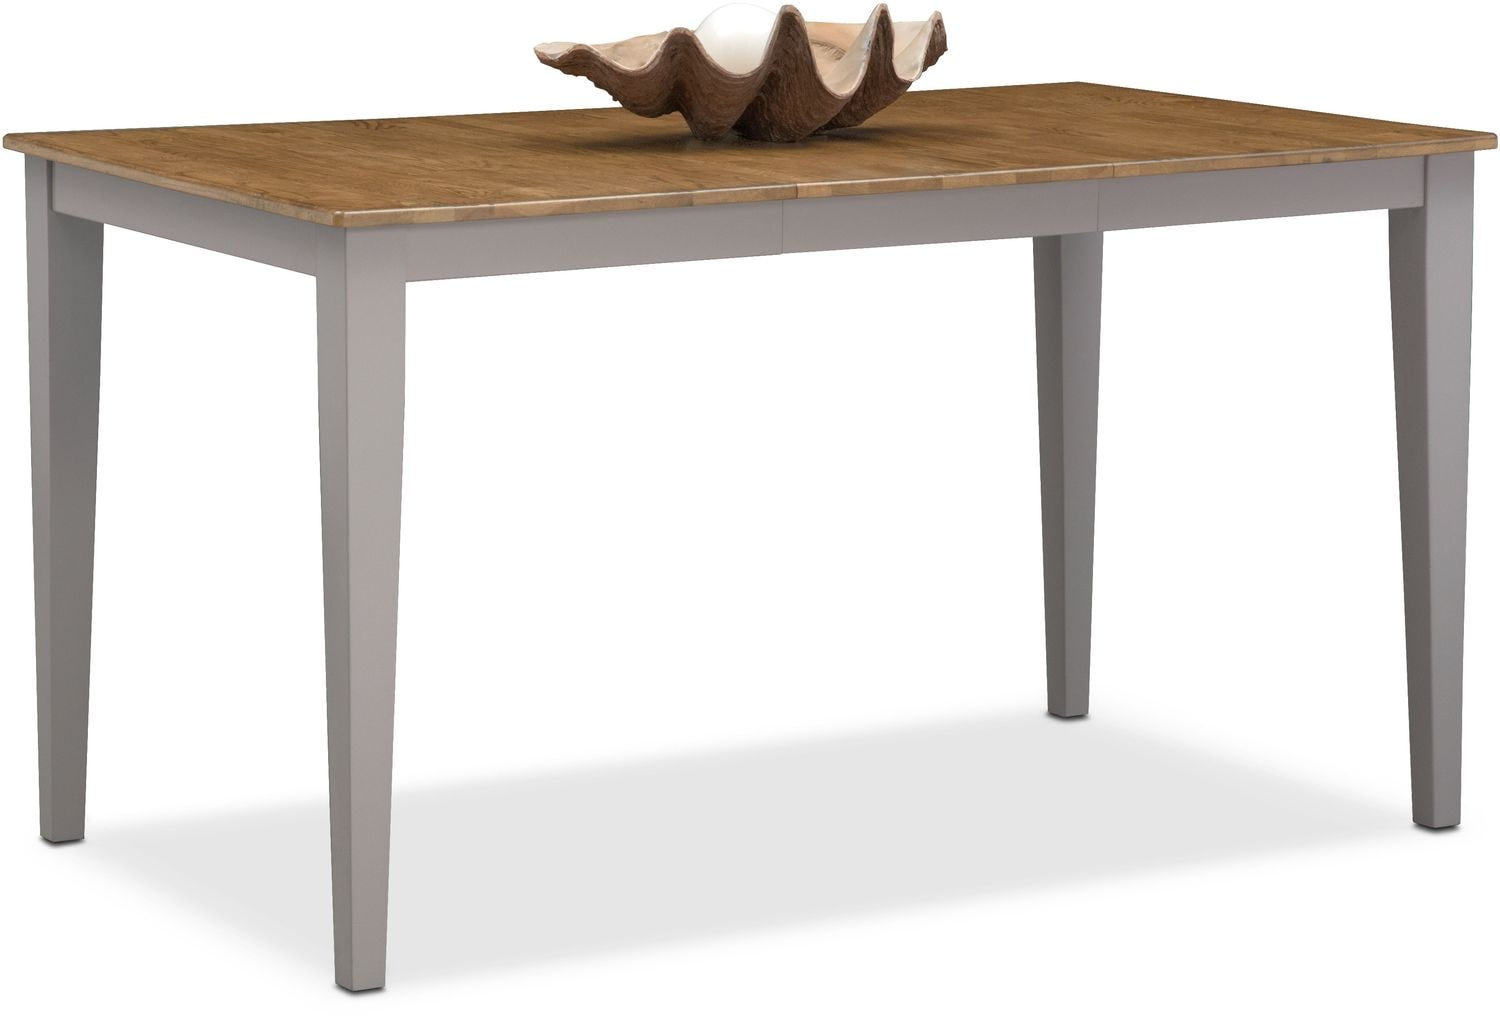 Nantucket Counter-Height Table - Maple